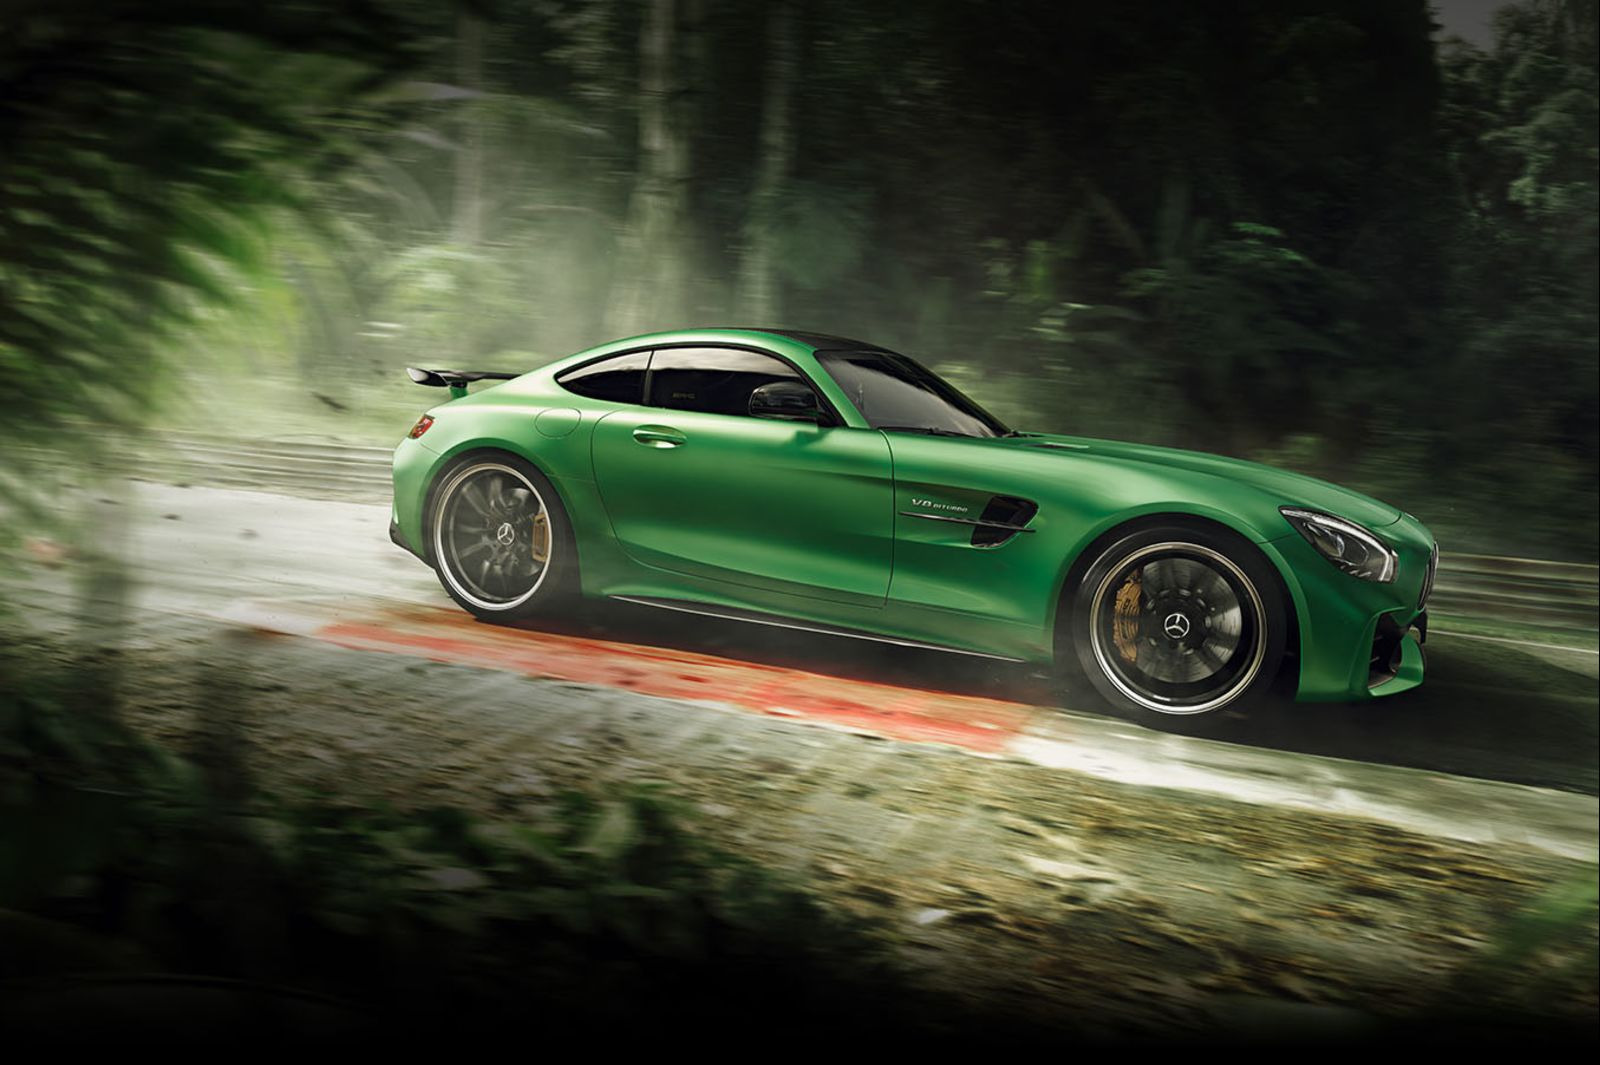 Coupe: Mercedes-Benz AMG GTR